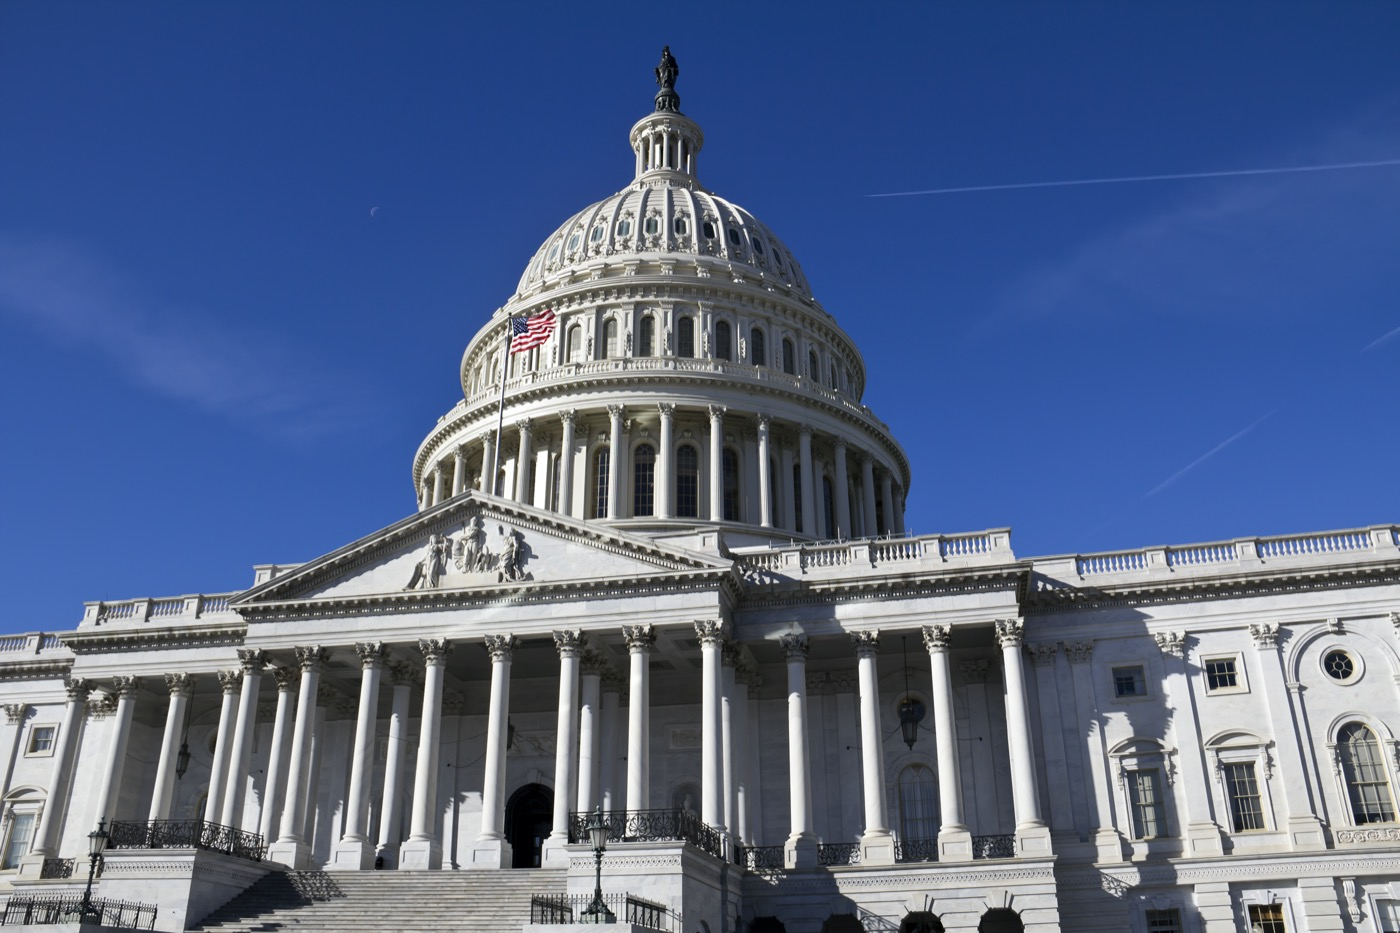 looking up at the u.s. capitol building on a cloudless day